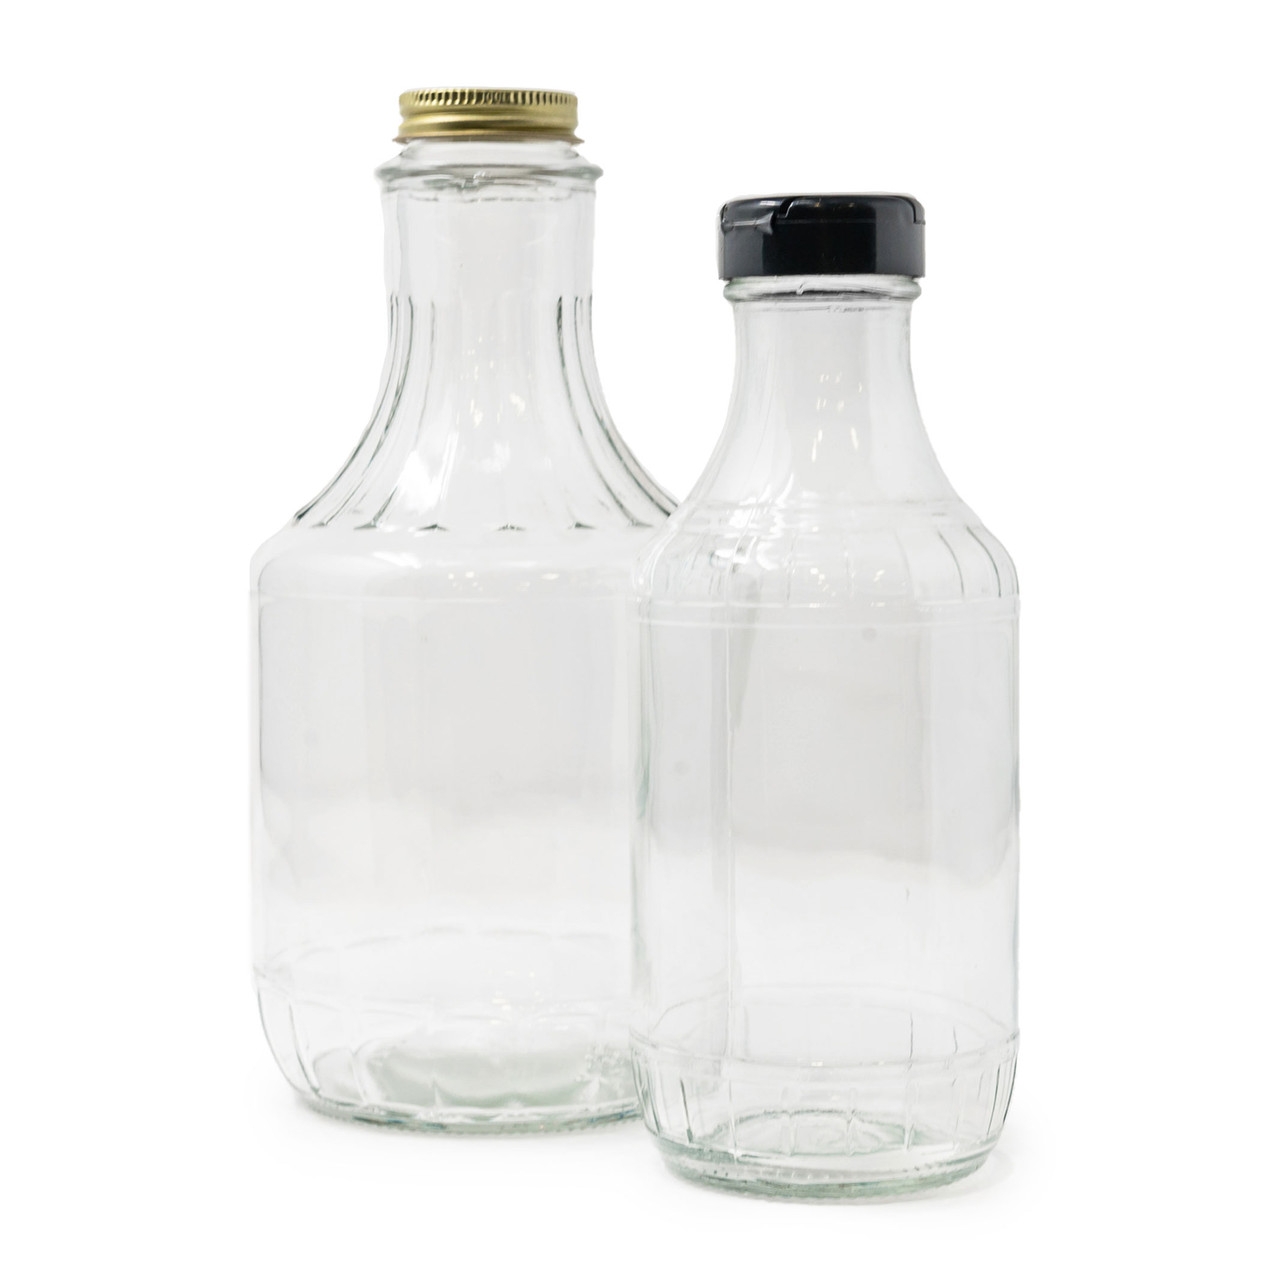 Decanter Bottles for Maple Syrup